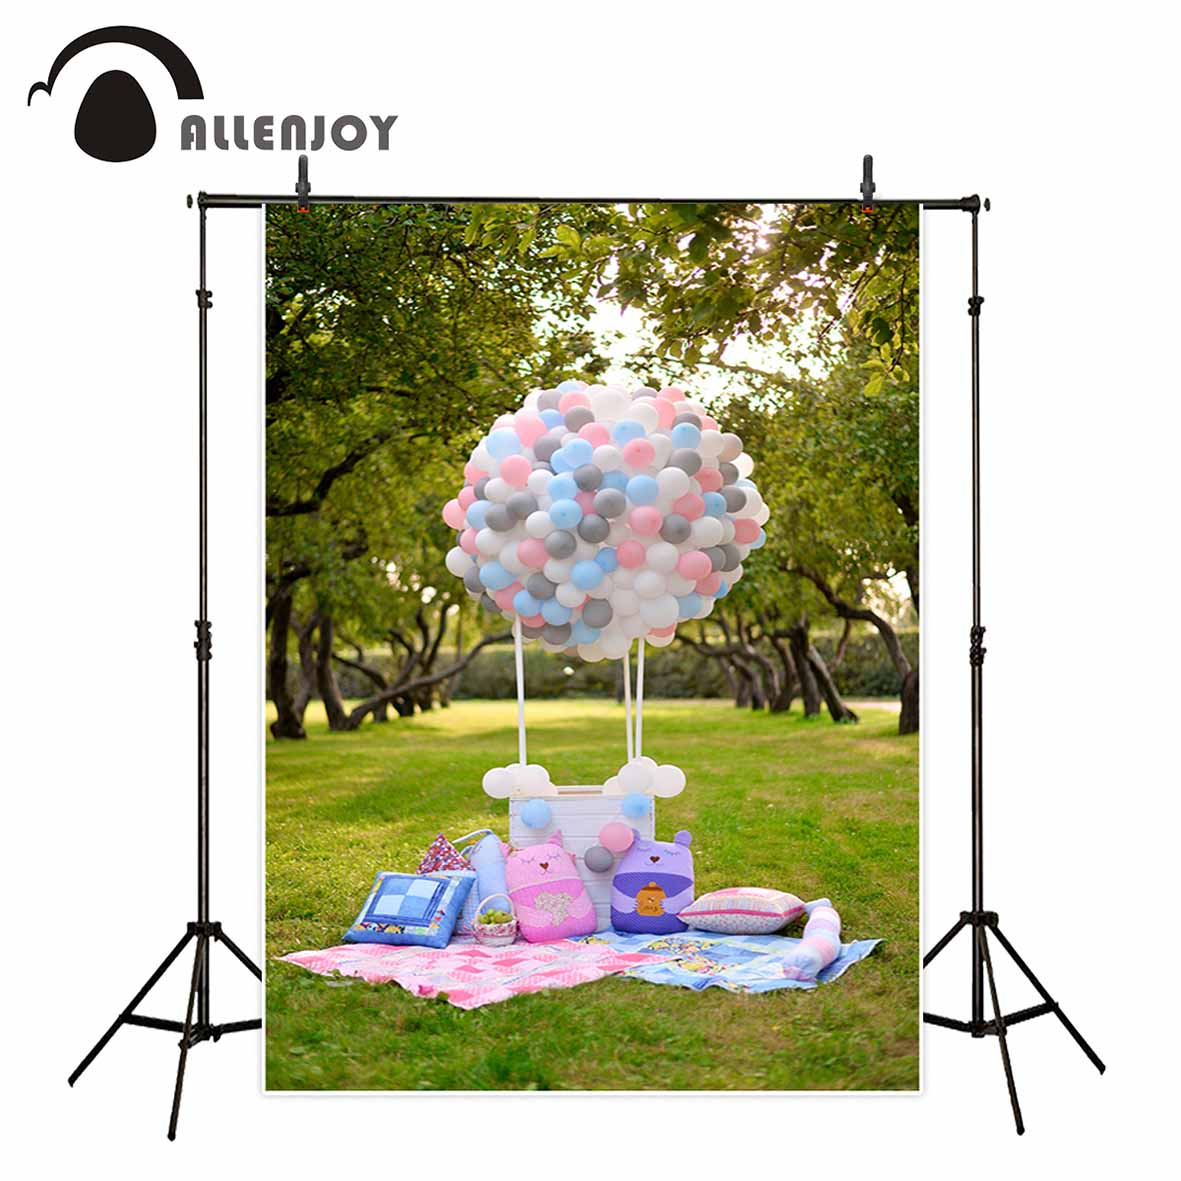 Allenjoy photo background balloons grassland picnic toy children backdrop tree park backgrounds for photo studio decorations magic balloons water kids toy 111 water balloons in less than one minute water bunch of balloons for children s outdoor sports